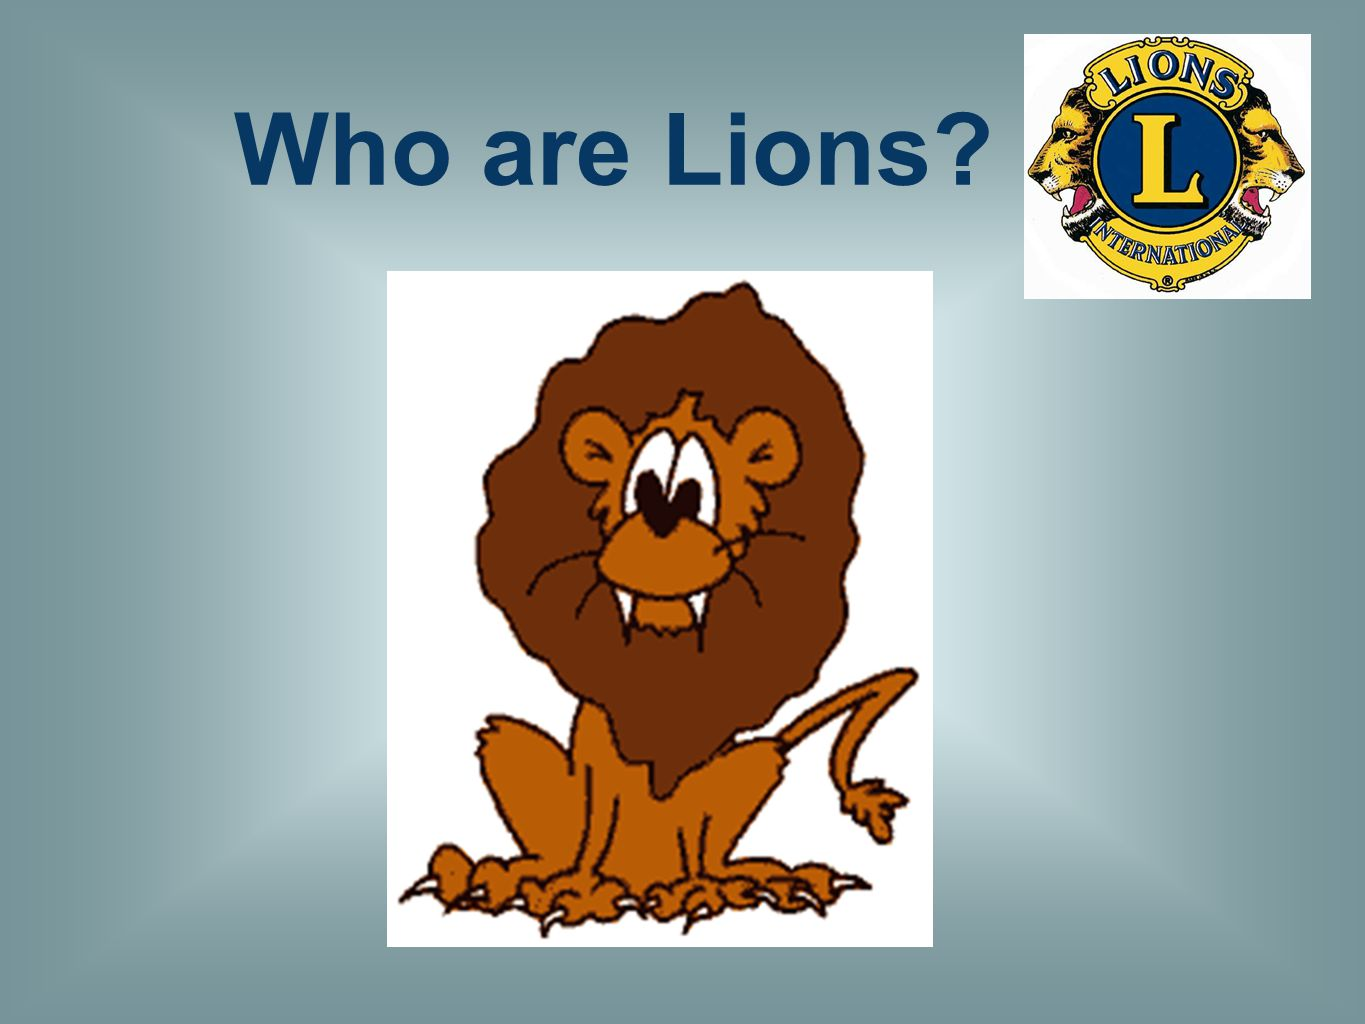 Who are Lions